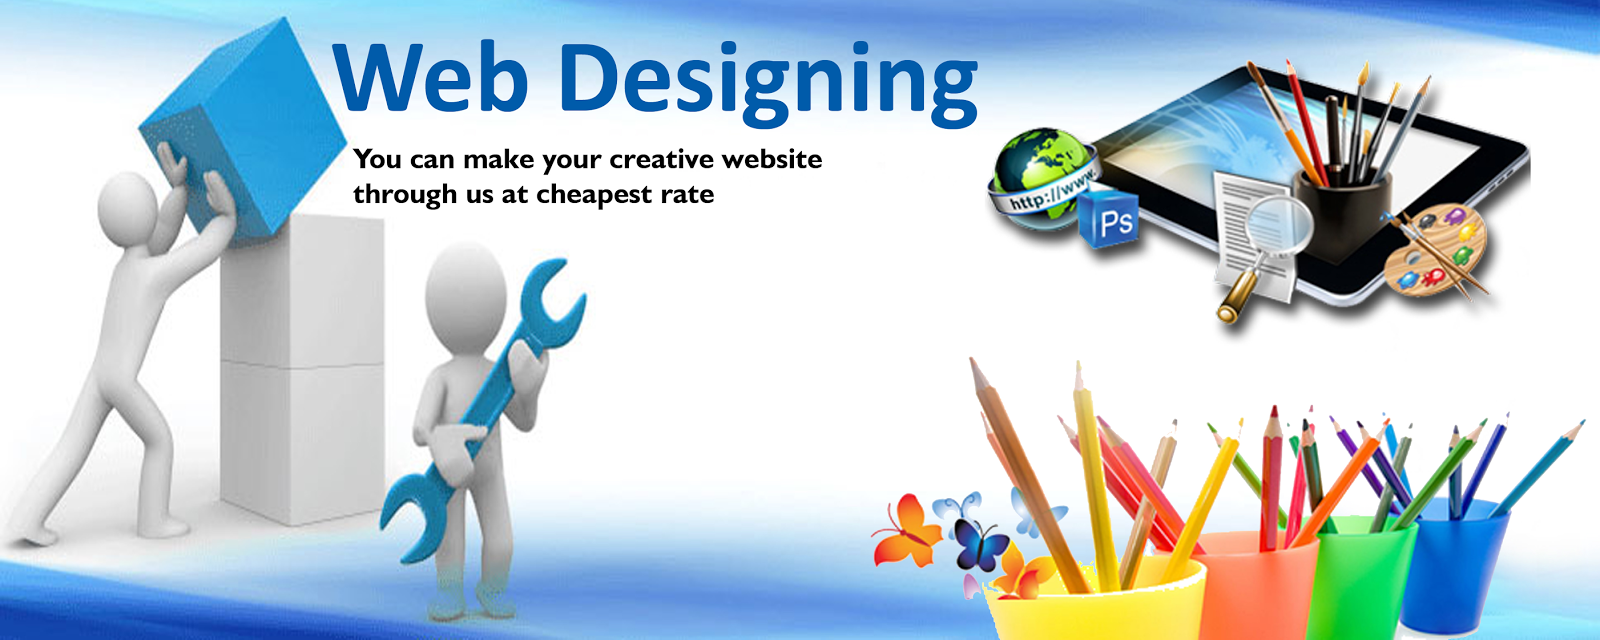 website designing company in Ara Bhojpur, Website Development compay in Araah Bhojpur